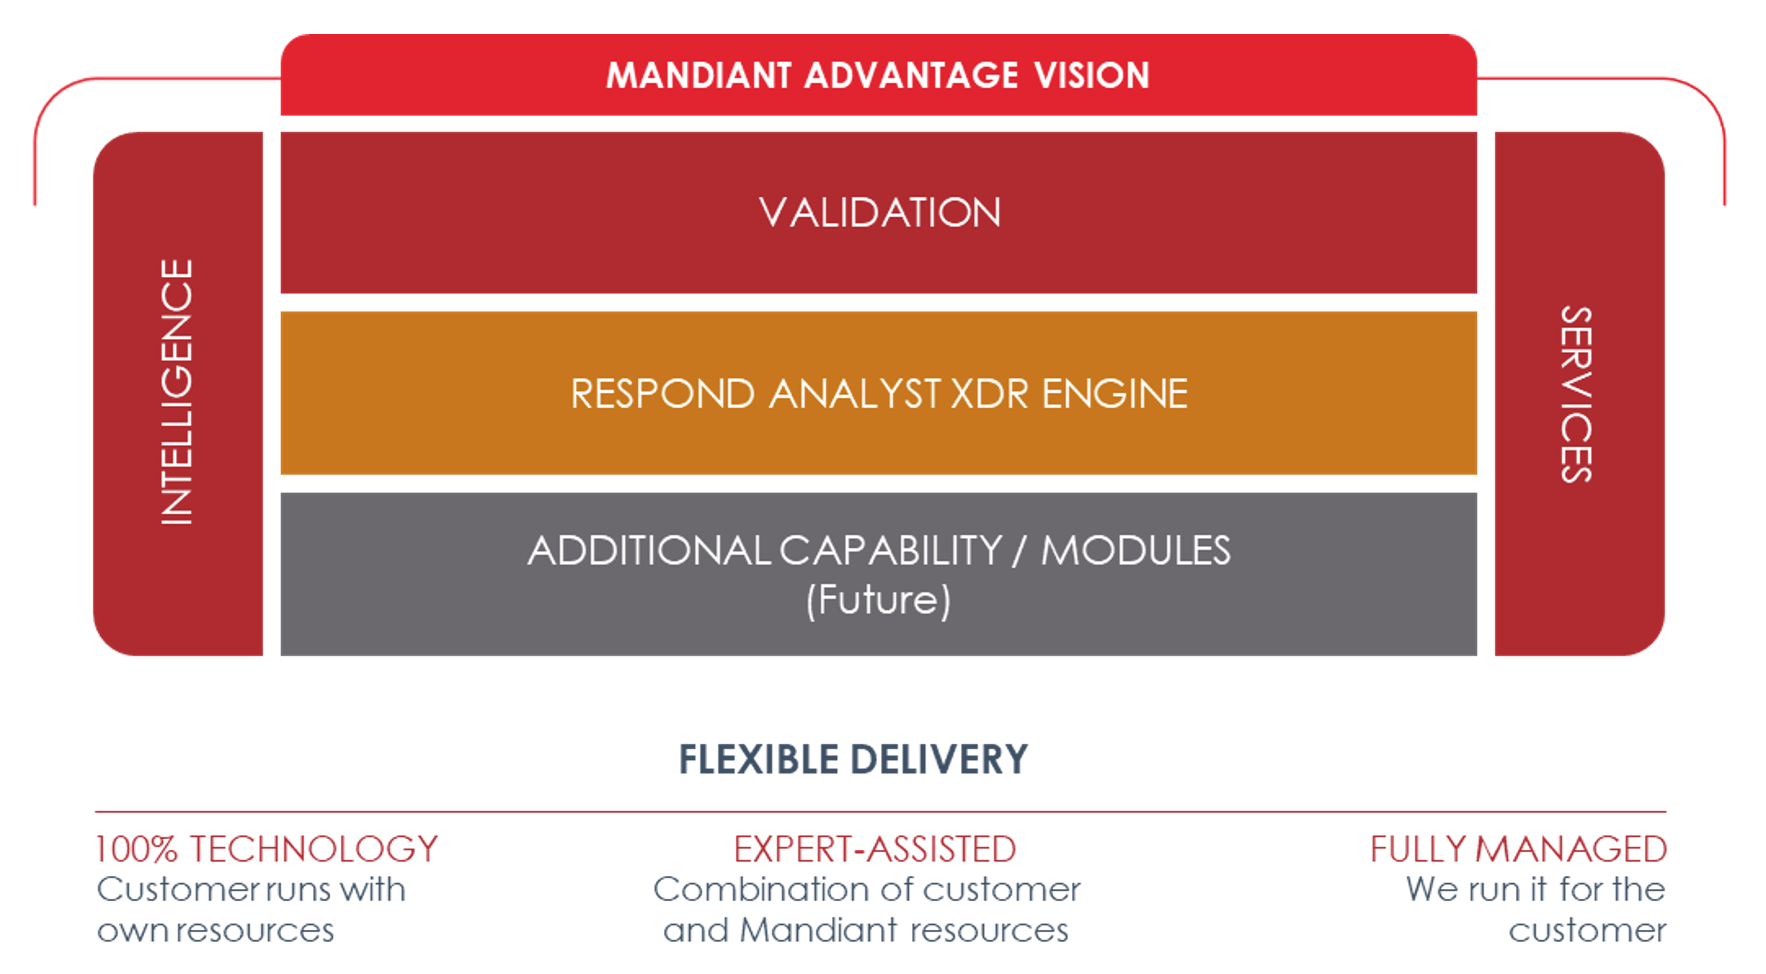 Respond Software will provide an XDR module within Mandiant Advantage that combines experts and intelligence with Machine Learning to power SOC event/alert correlation and triage.